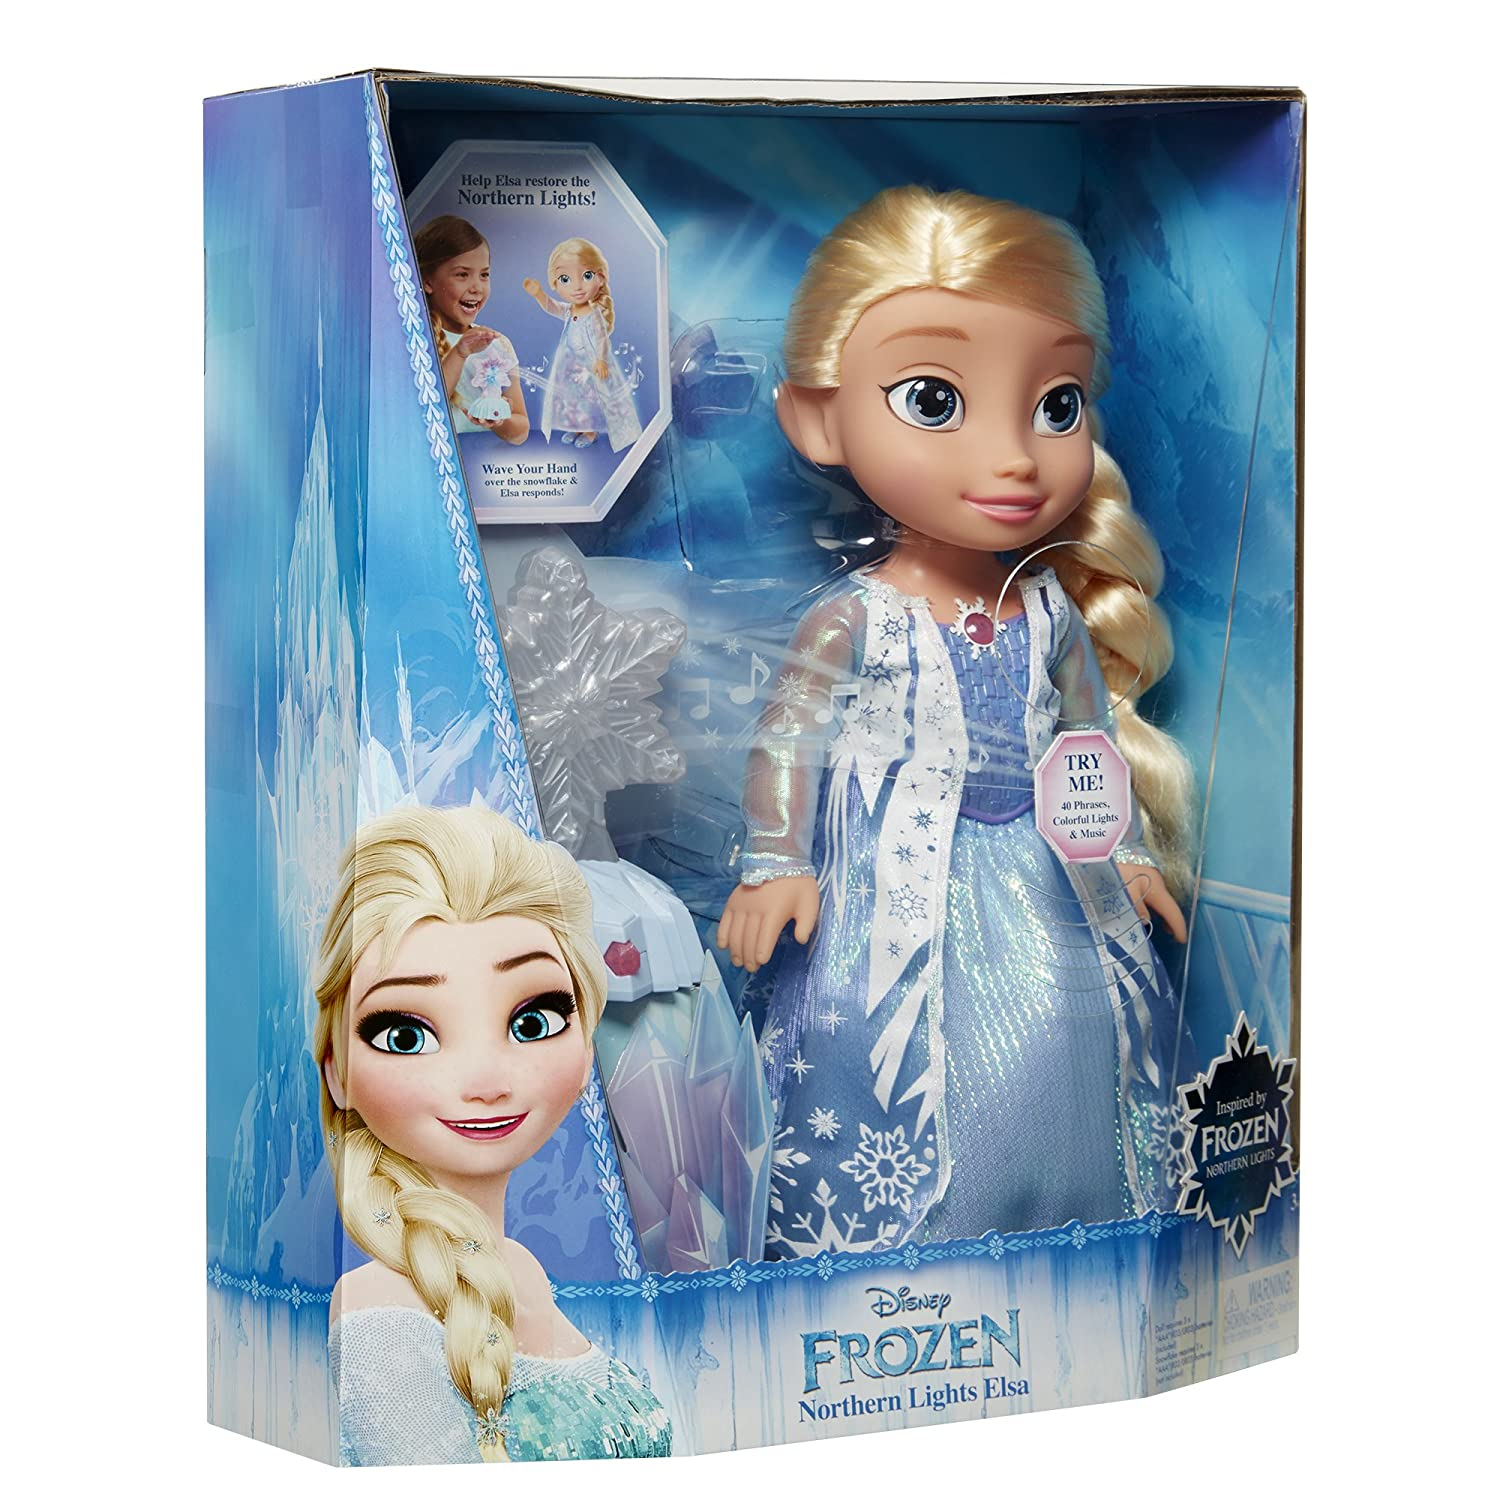 81l29PLCh8L._SL1500_ amazon com frozen northern lights elsa doll toys & games AC Electrical Wiring Diagrams at mr168.co